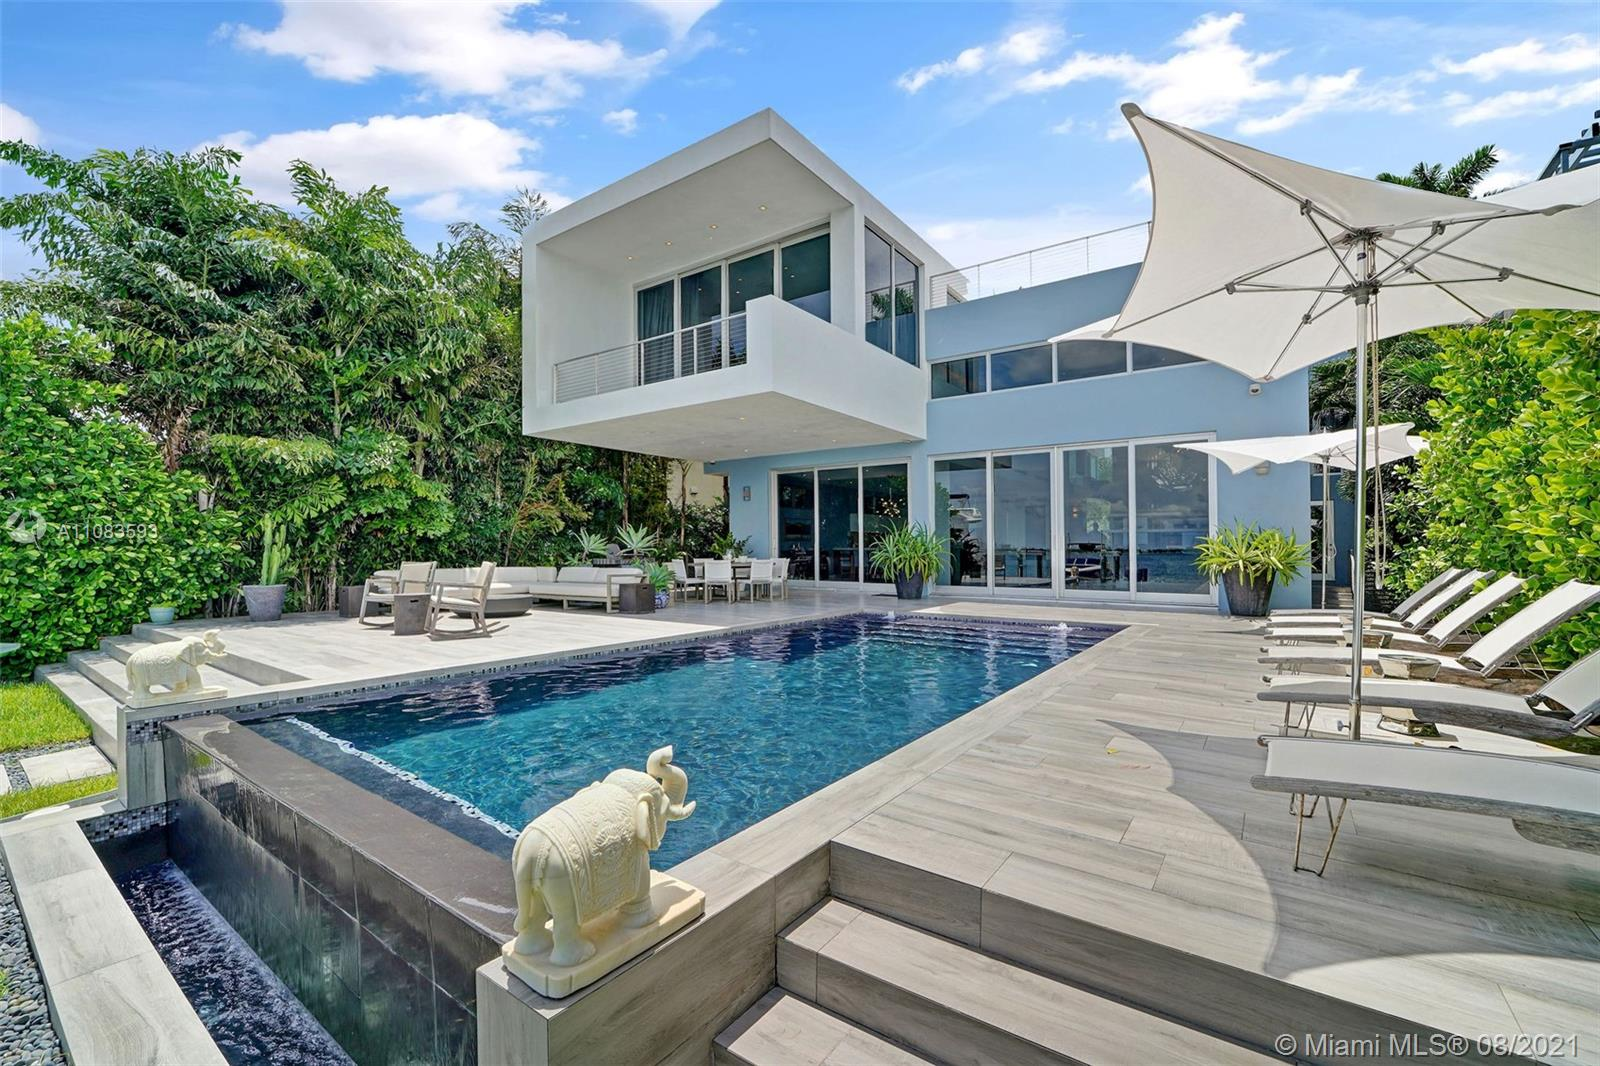 Sleek, Modern, Beautiful Masterpiece in the highly coveted Venetian Islands. Unobstructed, Wide Water Views of Biscayne Bay and Rooftop Deck affording 360 degree views of the Miami Skyline. This open concept home with lux interiors, has 5 bedrooms each with en suite baths. The double height living area with floor to ceiling doors bathe the home in sunlight. The home was designed to blur the lines of indoor/outdoor living. Tasteful terrazzo floors throughout along with smart technology along with an open Italkraft custom kitchen make this home ideal for entertaining. Cruise up to the new dock with new boat lifts on 60ft of water frontage, and enjoy the most beautiful view Miami can provide from your infinity pool. This Venetian home is the epitome of the highly sought after Miami lifestyle.